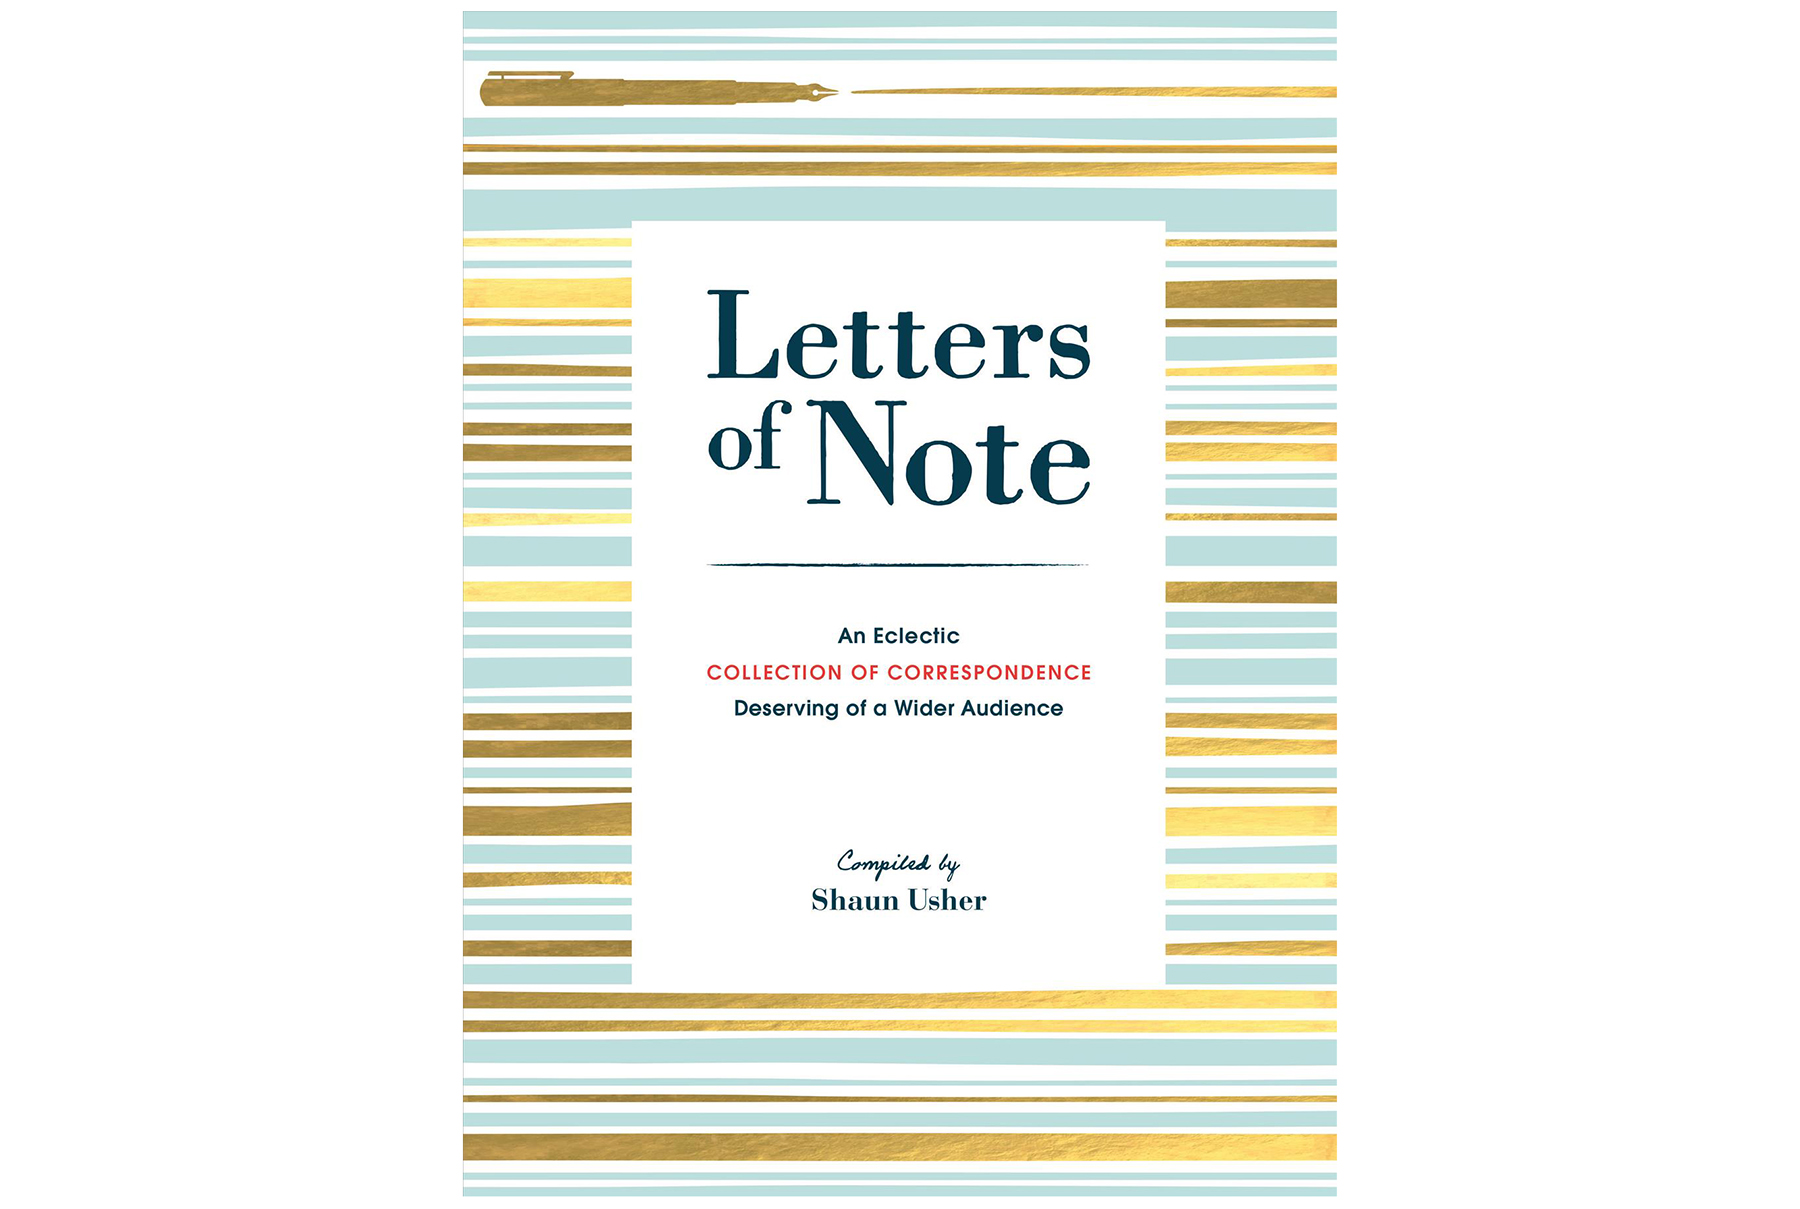 Letters of Note, by Shaun Usher